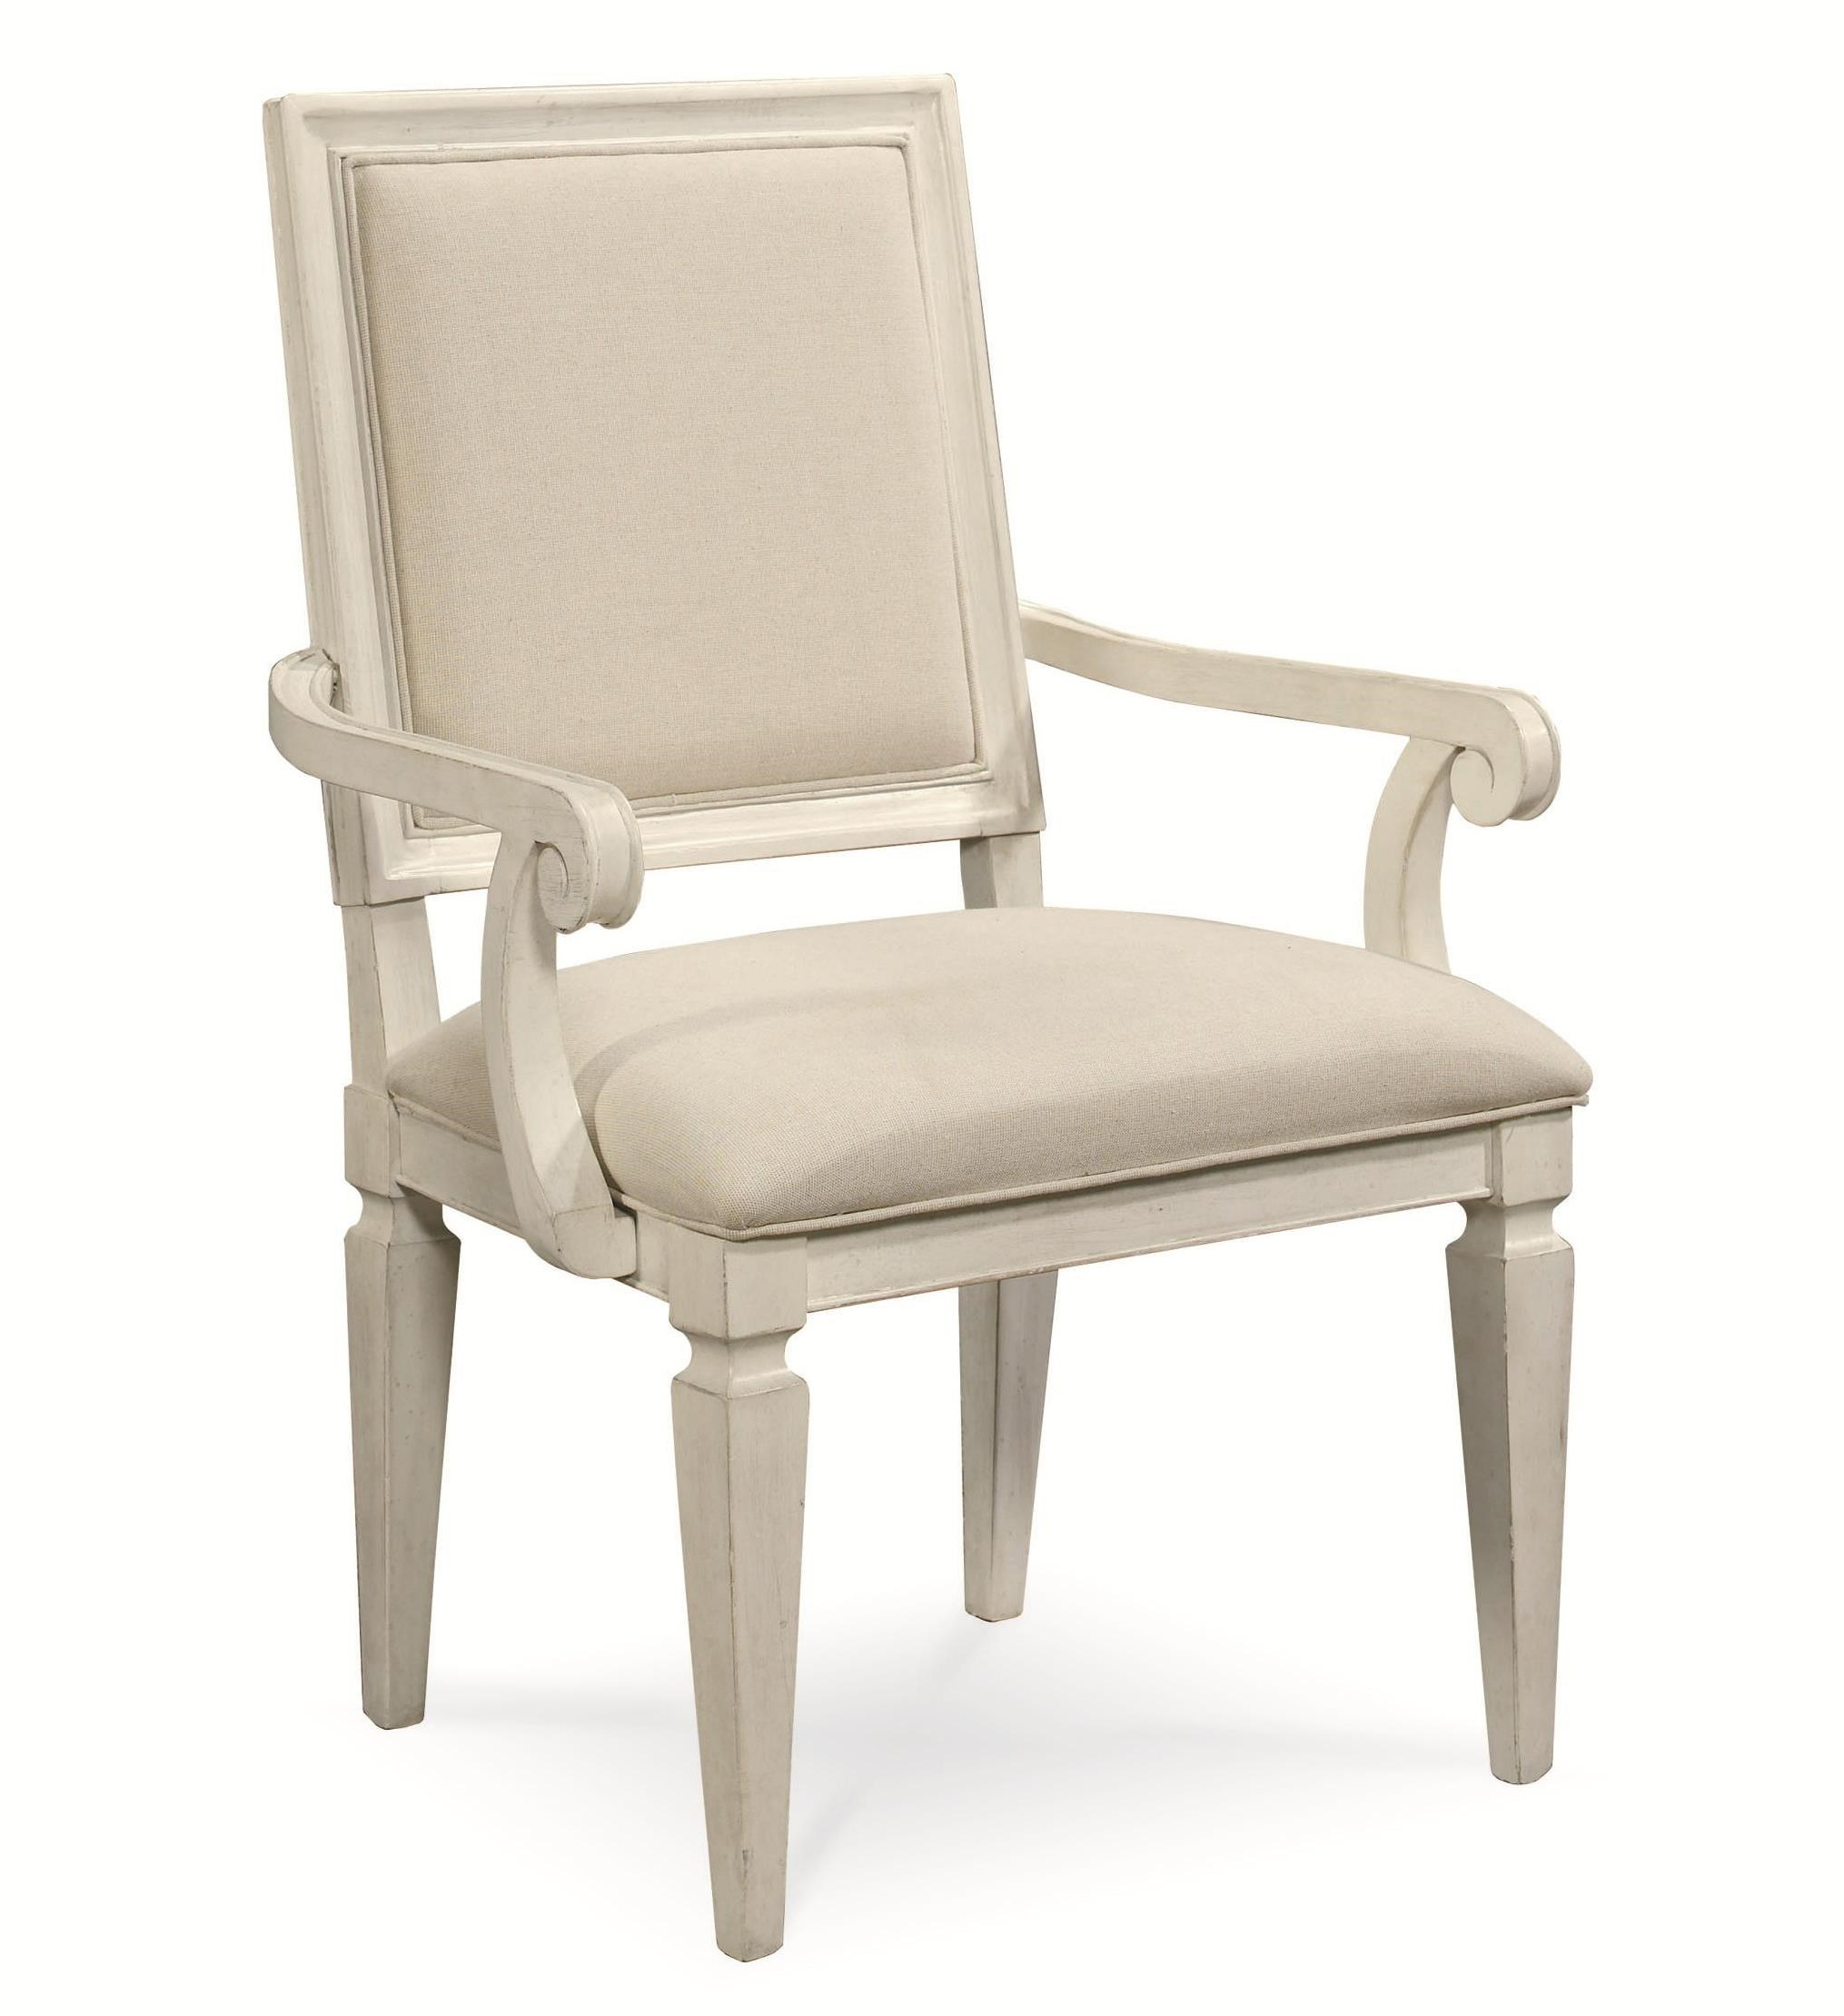 Accent Arm Chairs Summer Shade Woven Accent Arm Chair By Wittman Co At Morris Home